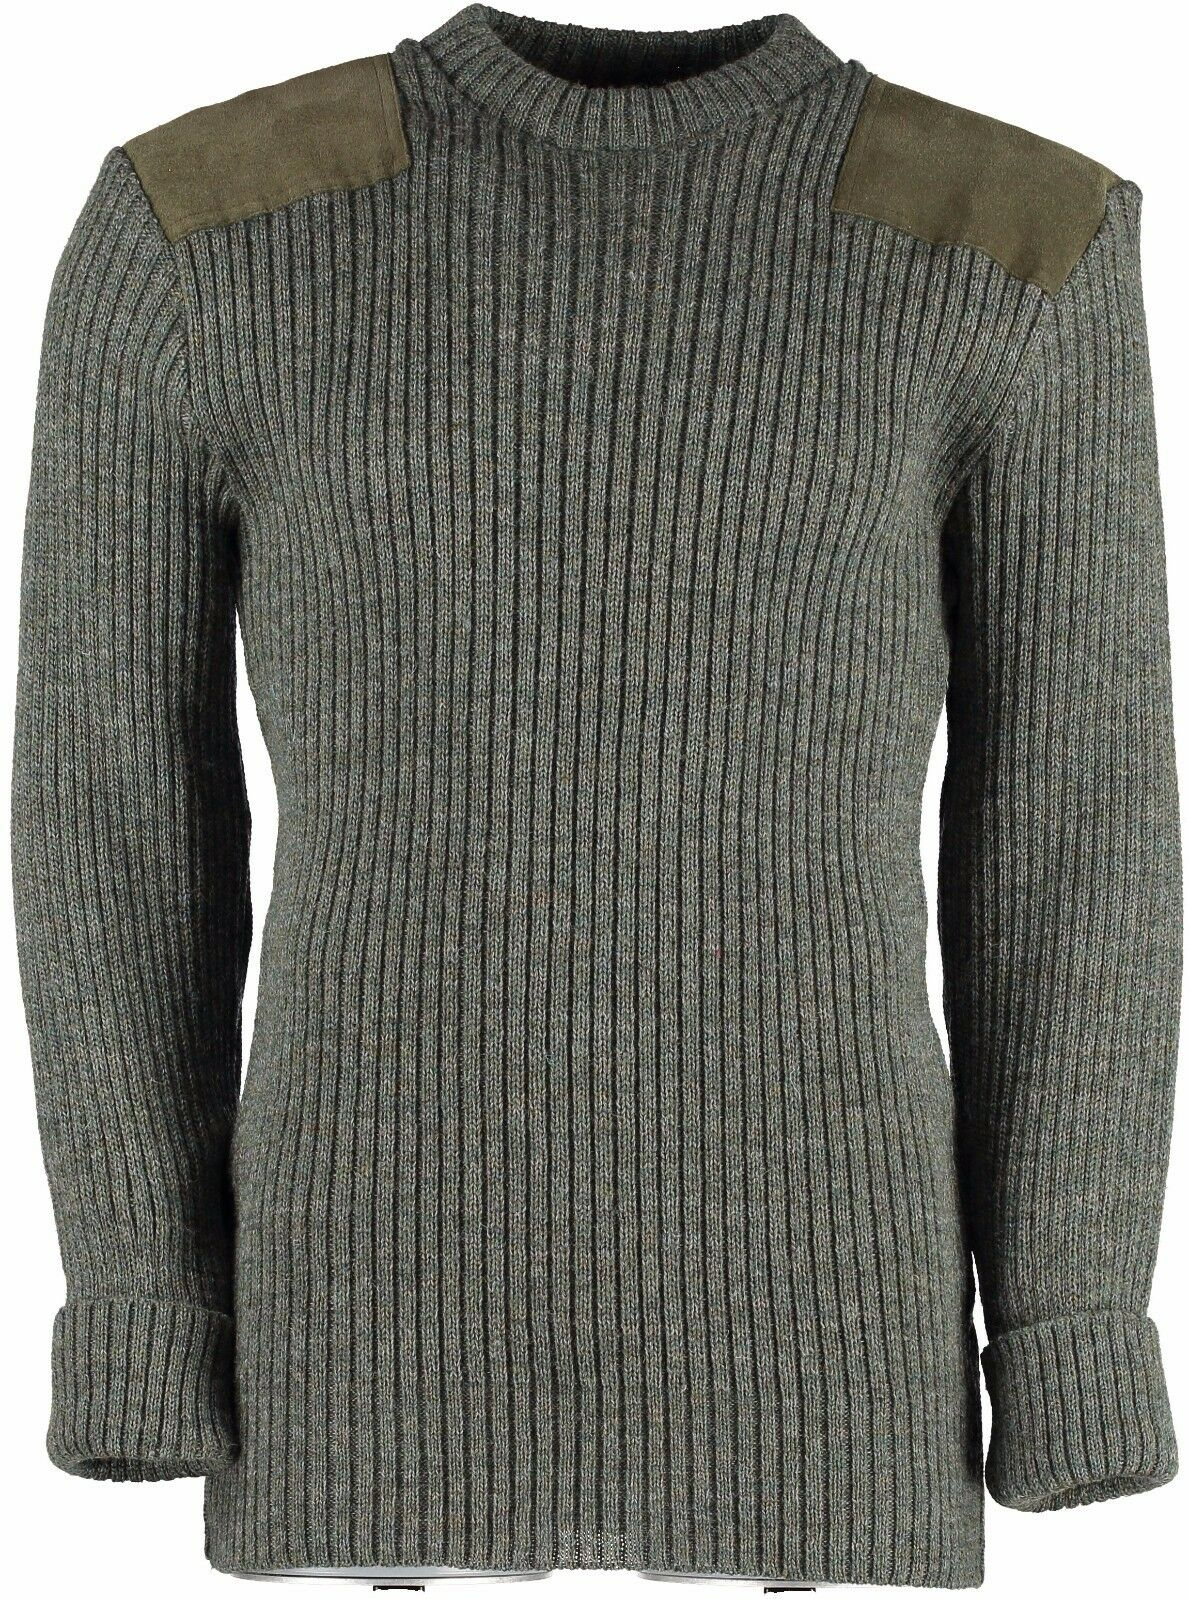 100% WOOL NATO/ARMY STYLE JUMPER. SUEDE PATCHES,OUTDOOR,UNIFORM,SECURITY.  09995